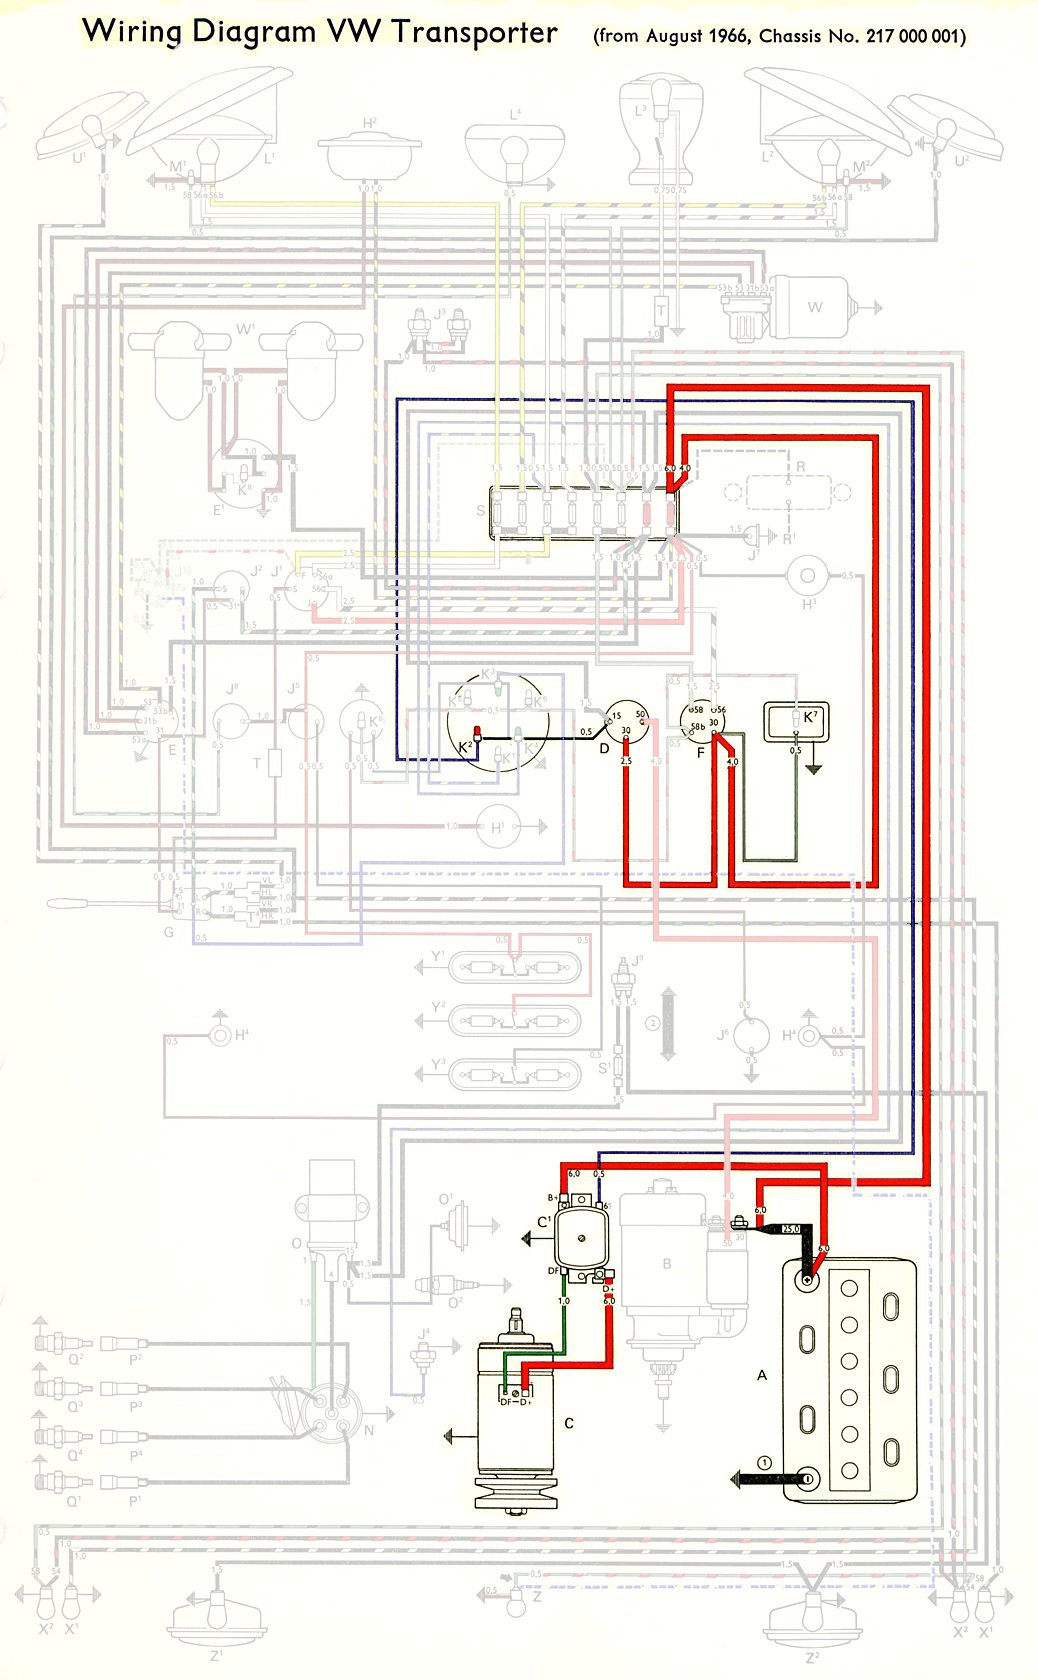 Bug Engine besides Wiringghia also Busguide wiringandfusebox moreover Webasto Engine Heaters further Wiringt2. on 1967 vw wiring diagram